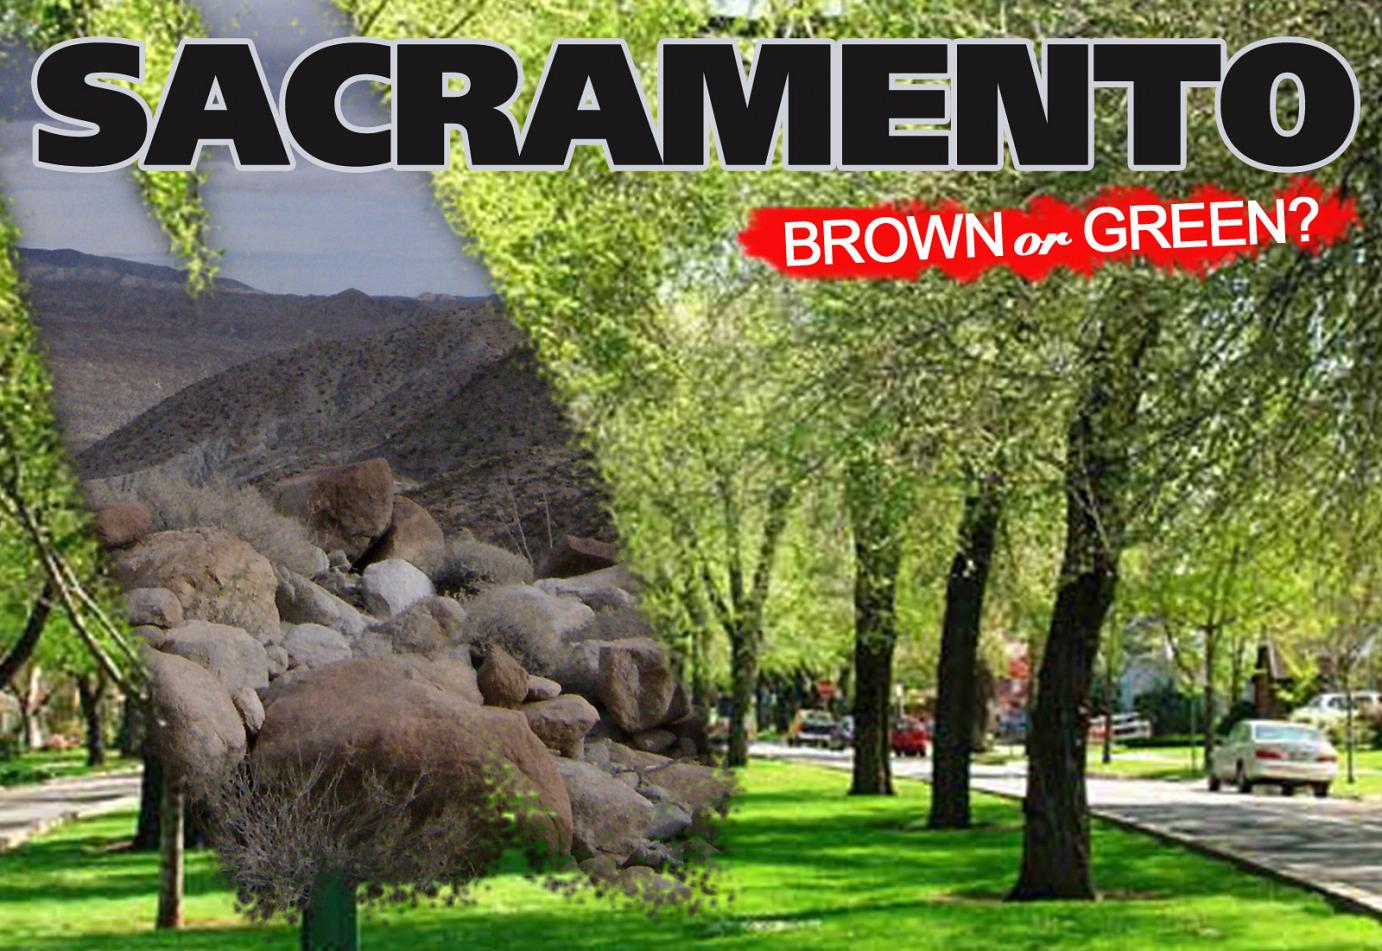 fakegrass Sacramento: Back to Desert, or Lifting a Ban on Artificial Grass?